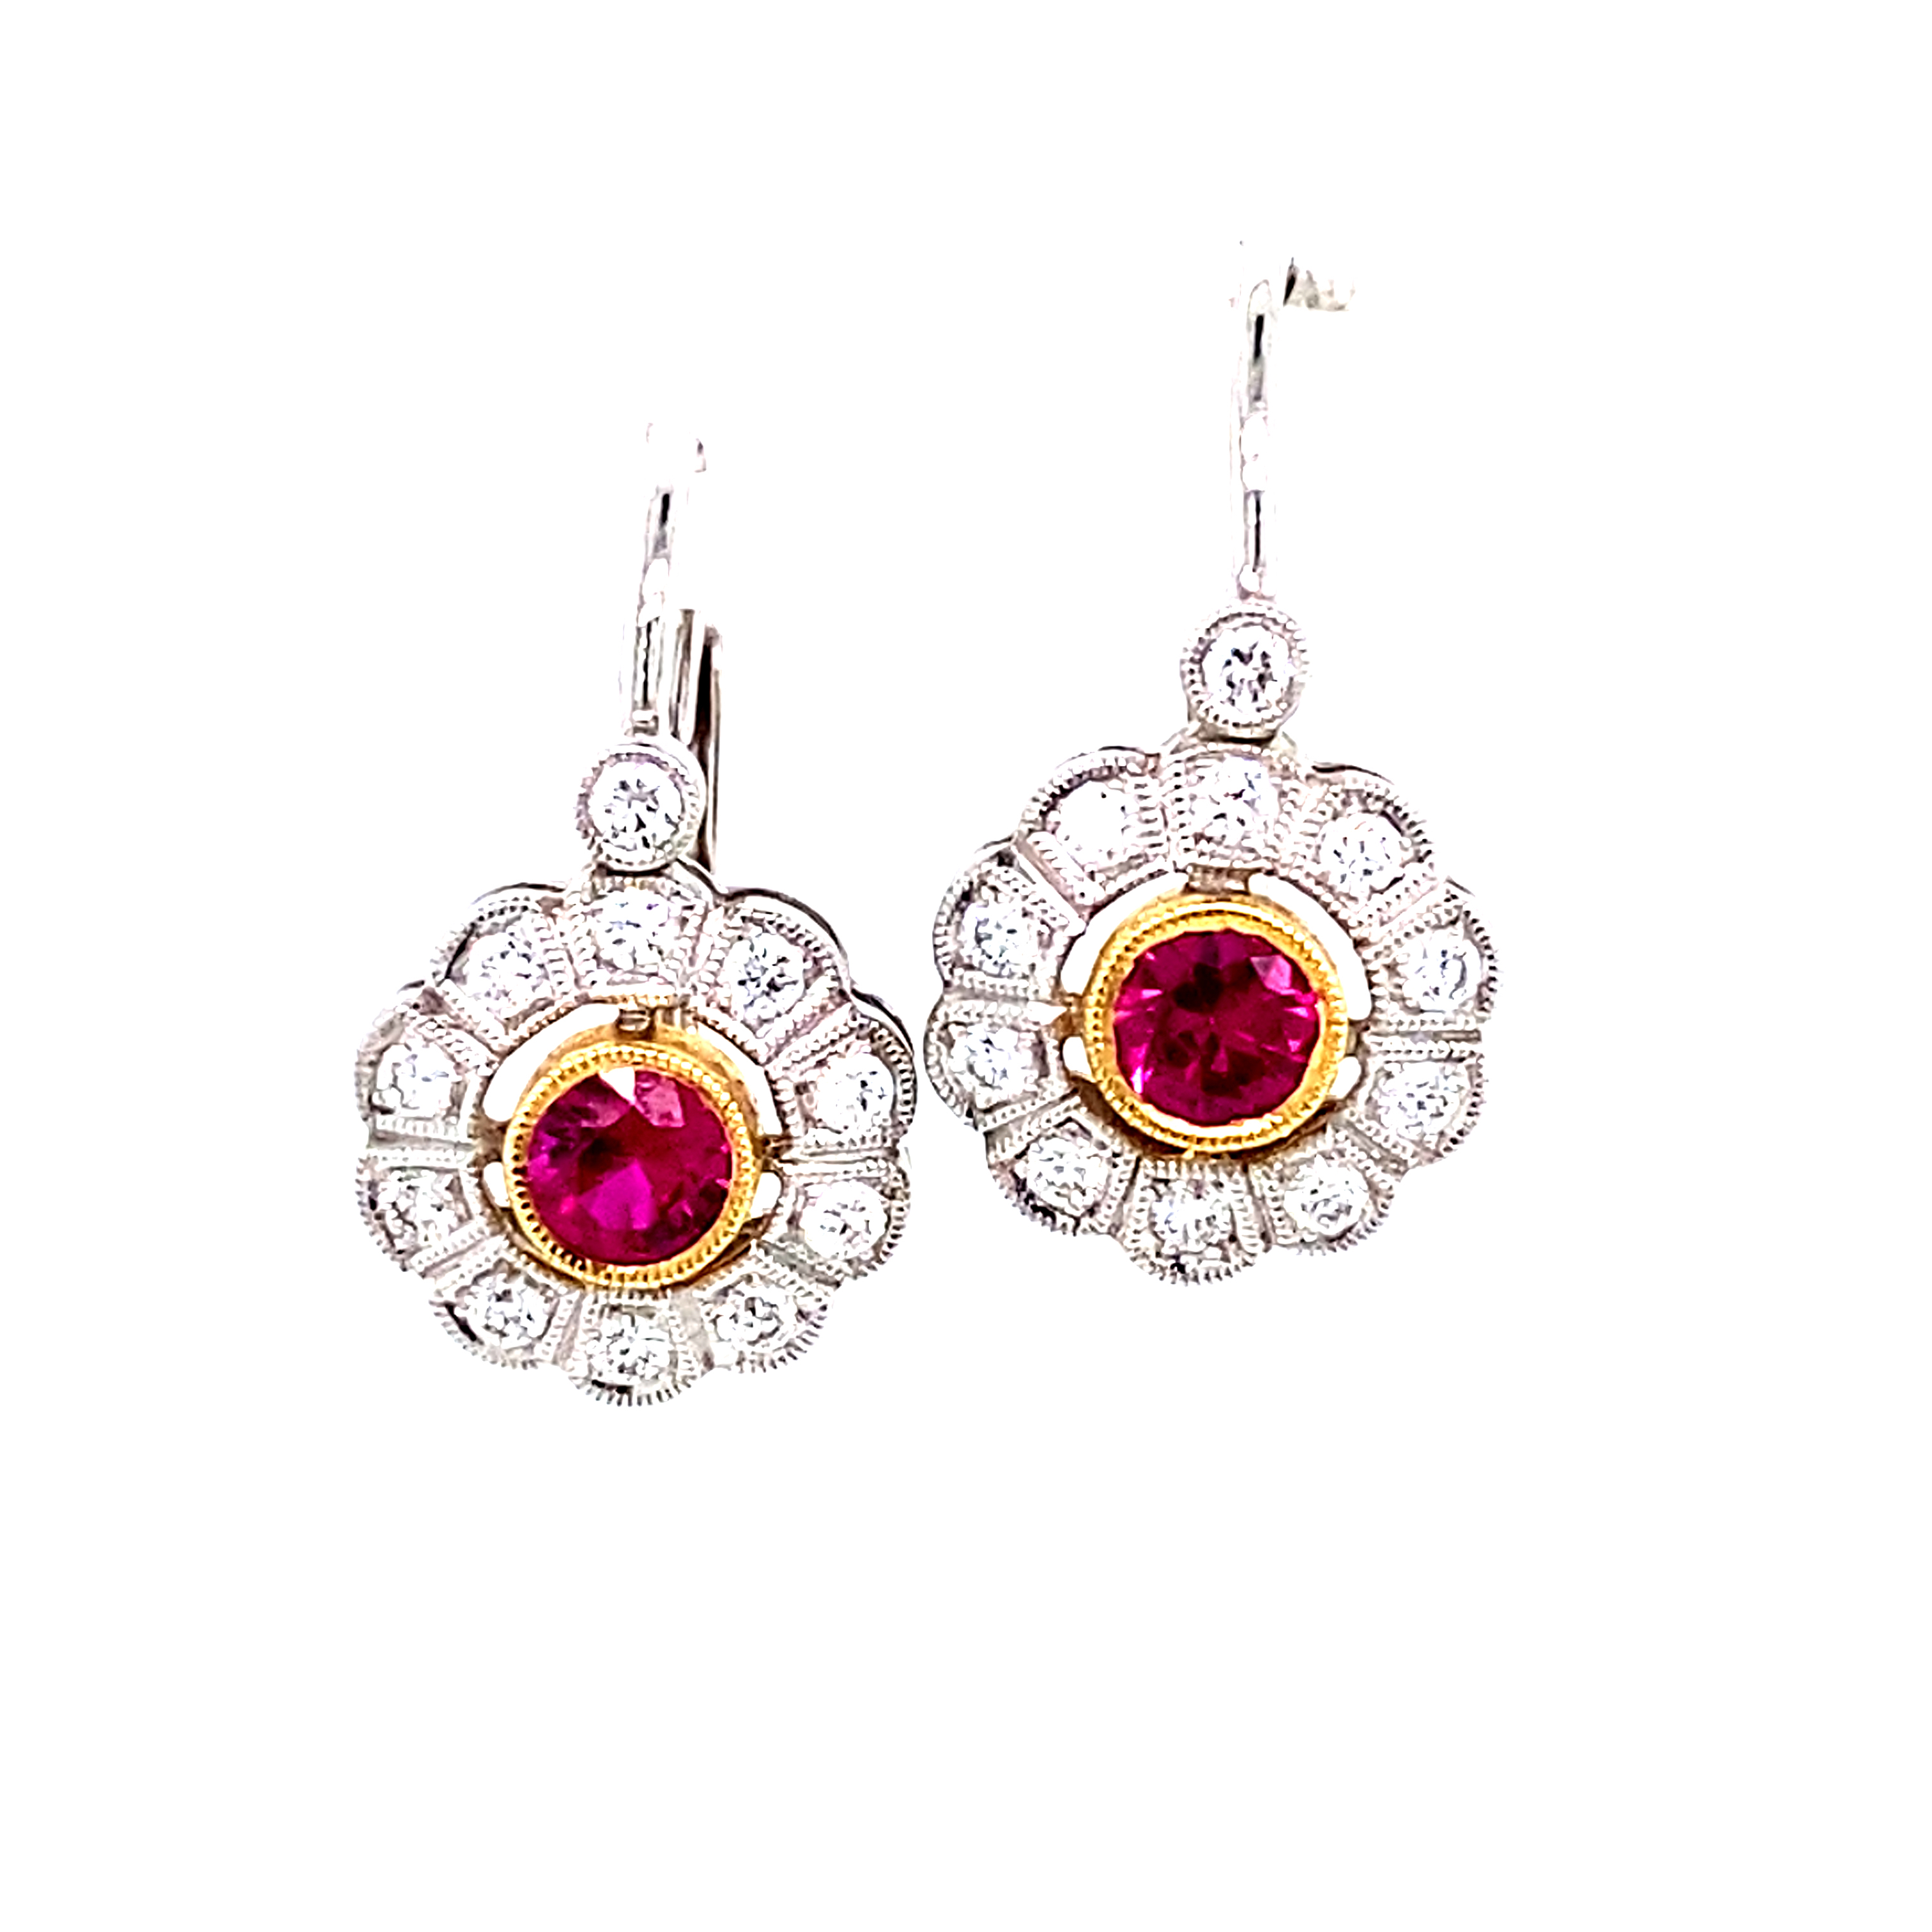 18ct White Gold Earrings with Rubies and Diamonds